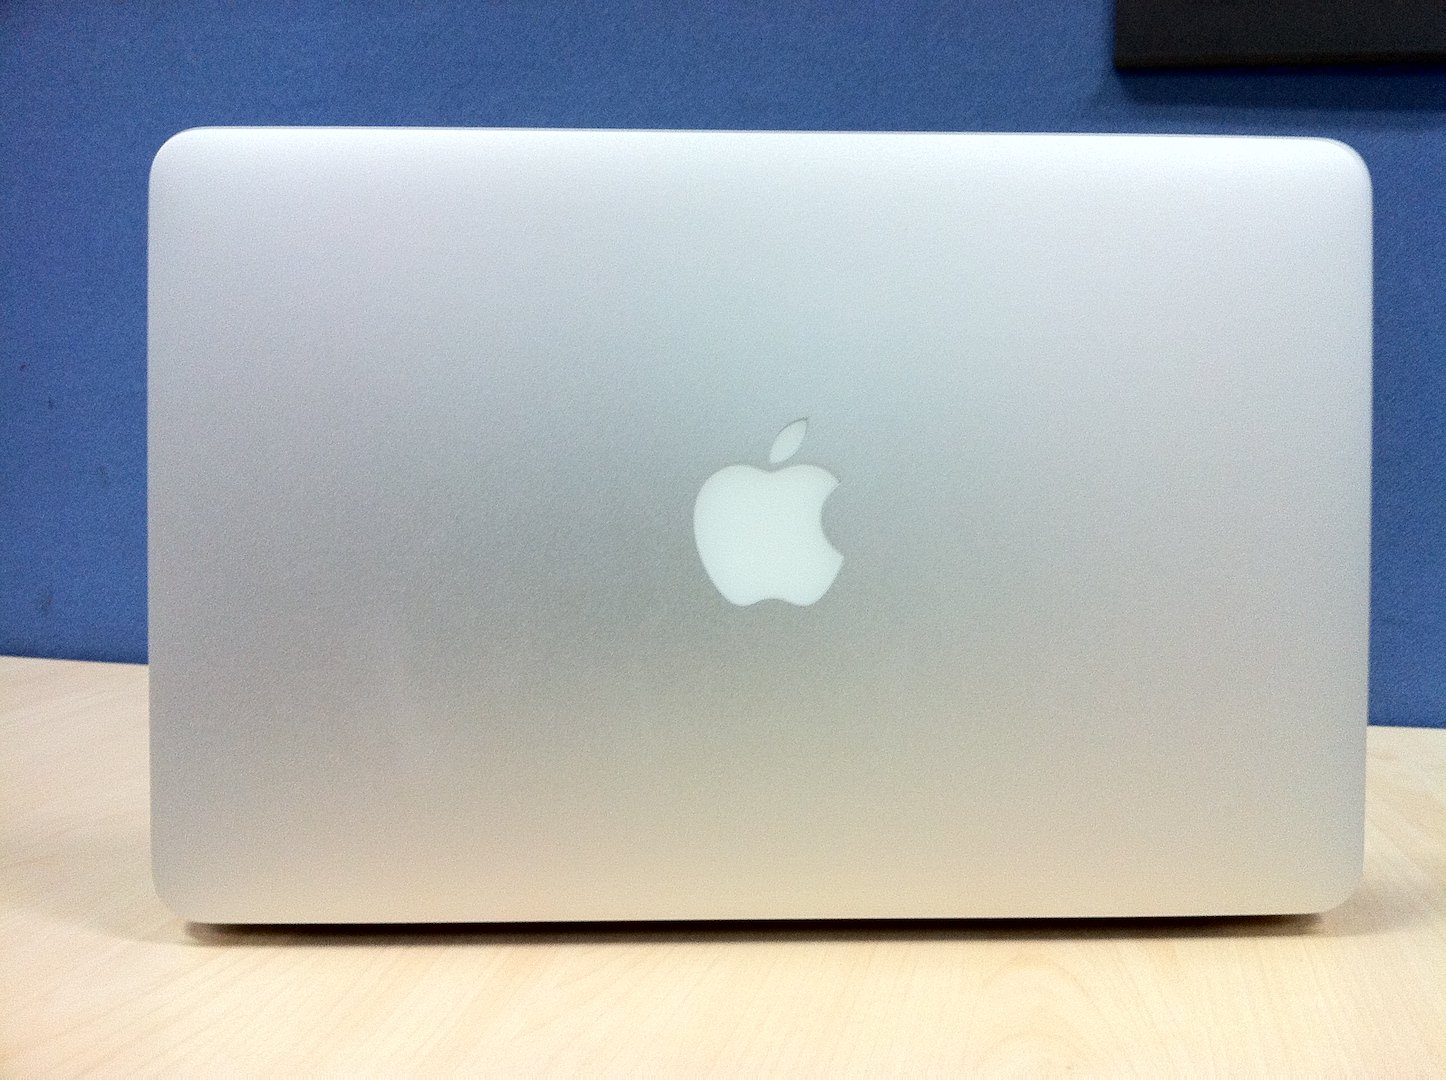 MacBook-Air-11-inch-model.jpg